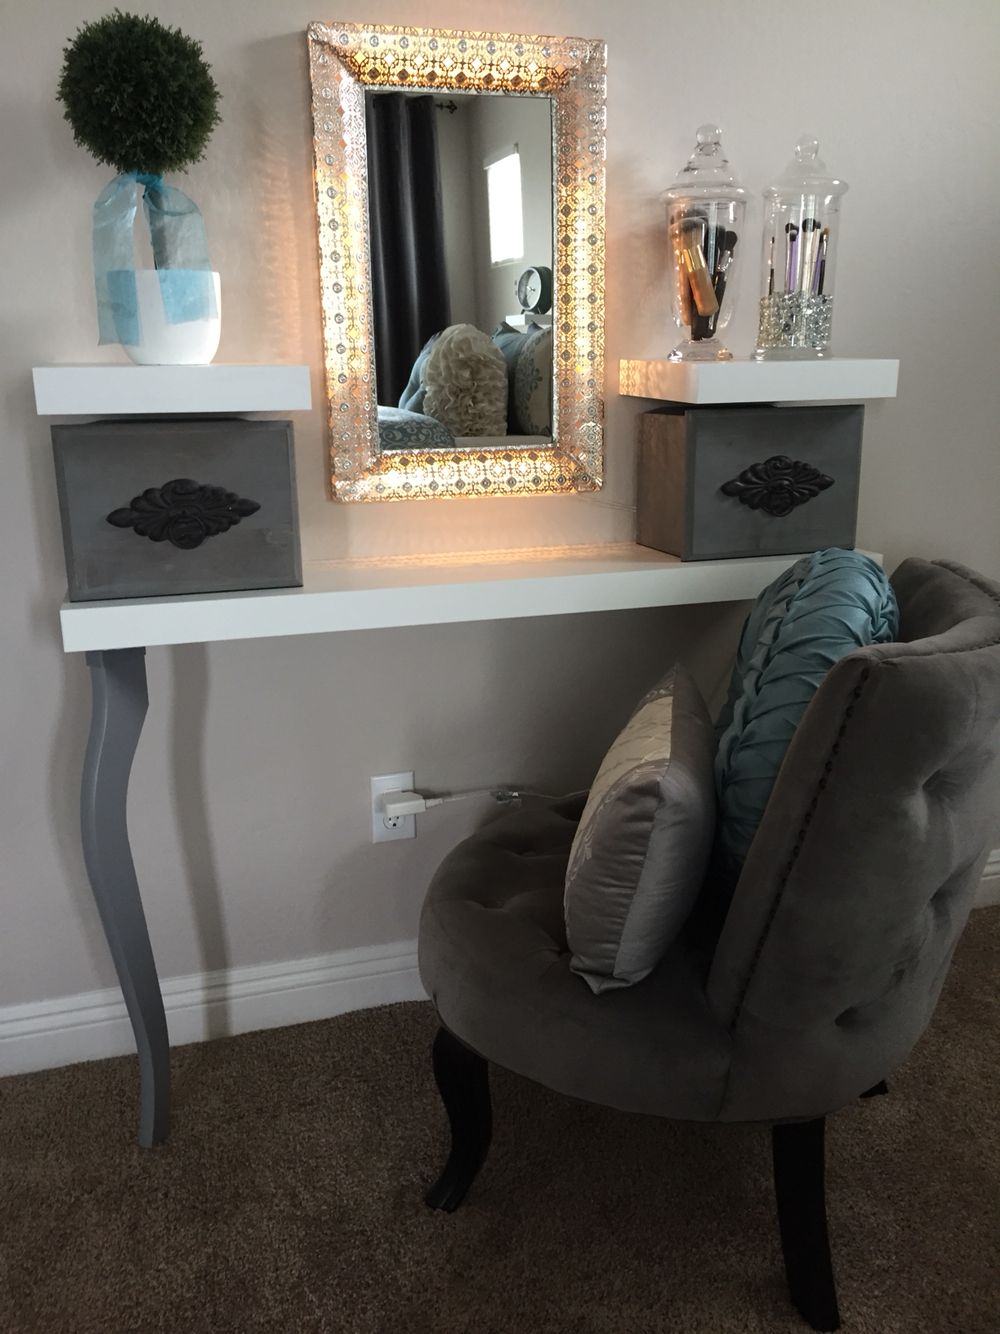 My homemade vanity. I pieced together items to make it and